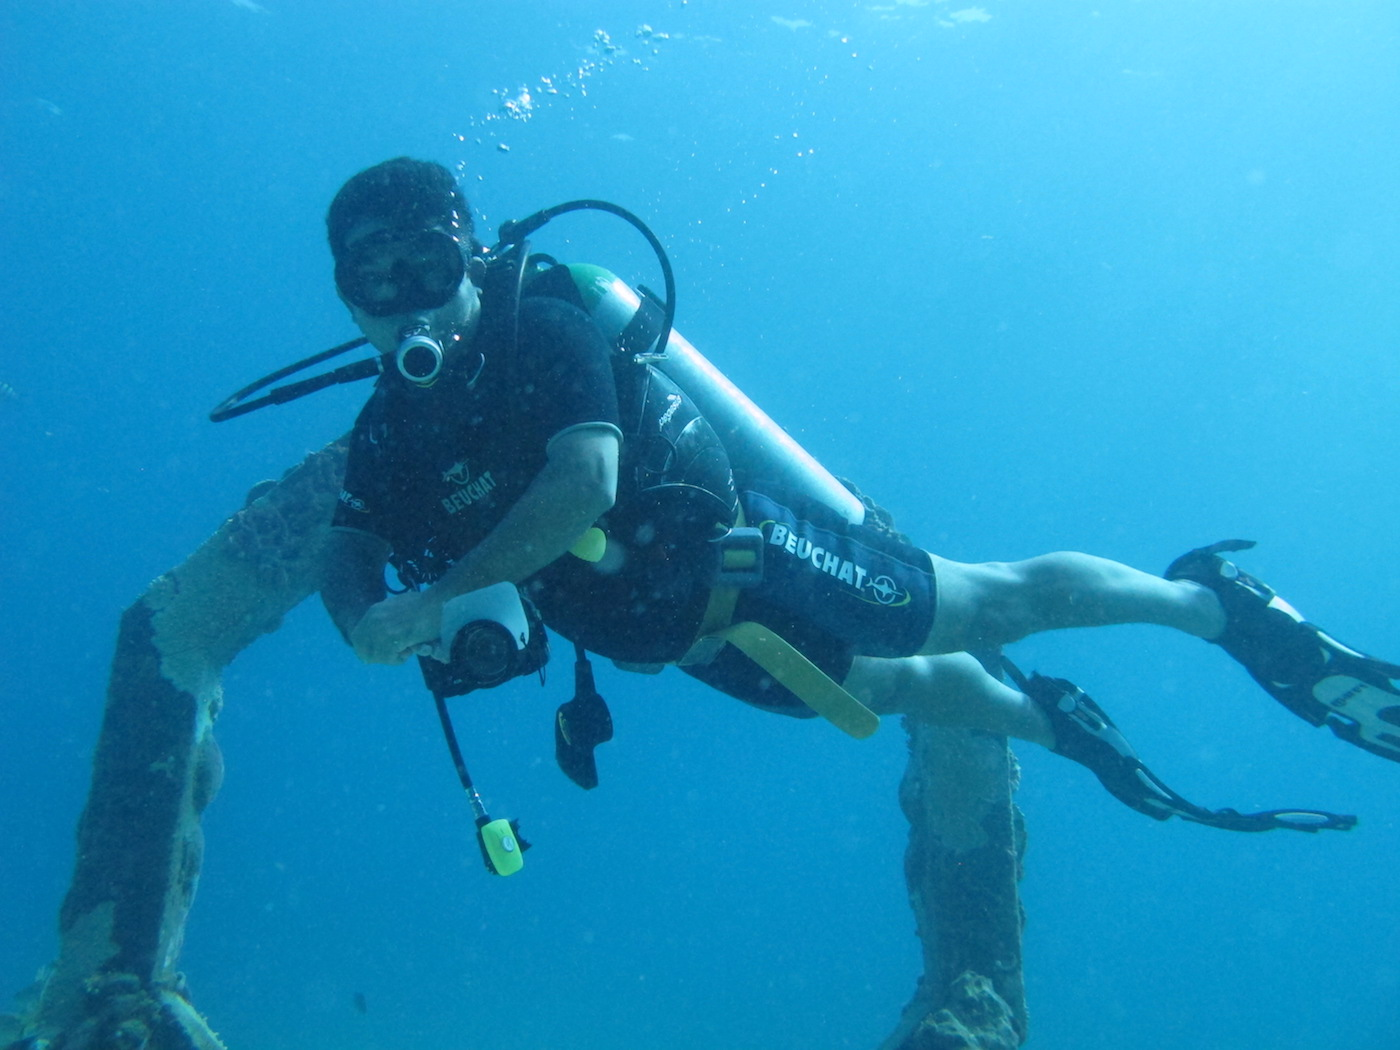 MUSA-Underwater-Museum-Snorkeling-Scuba-Diving-Tours-Isla-Mujeres-Carey-Dive-Center-5